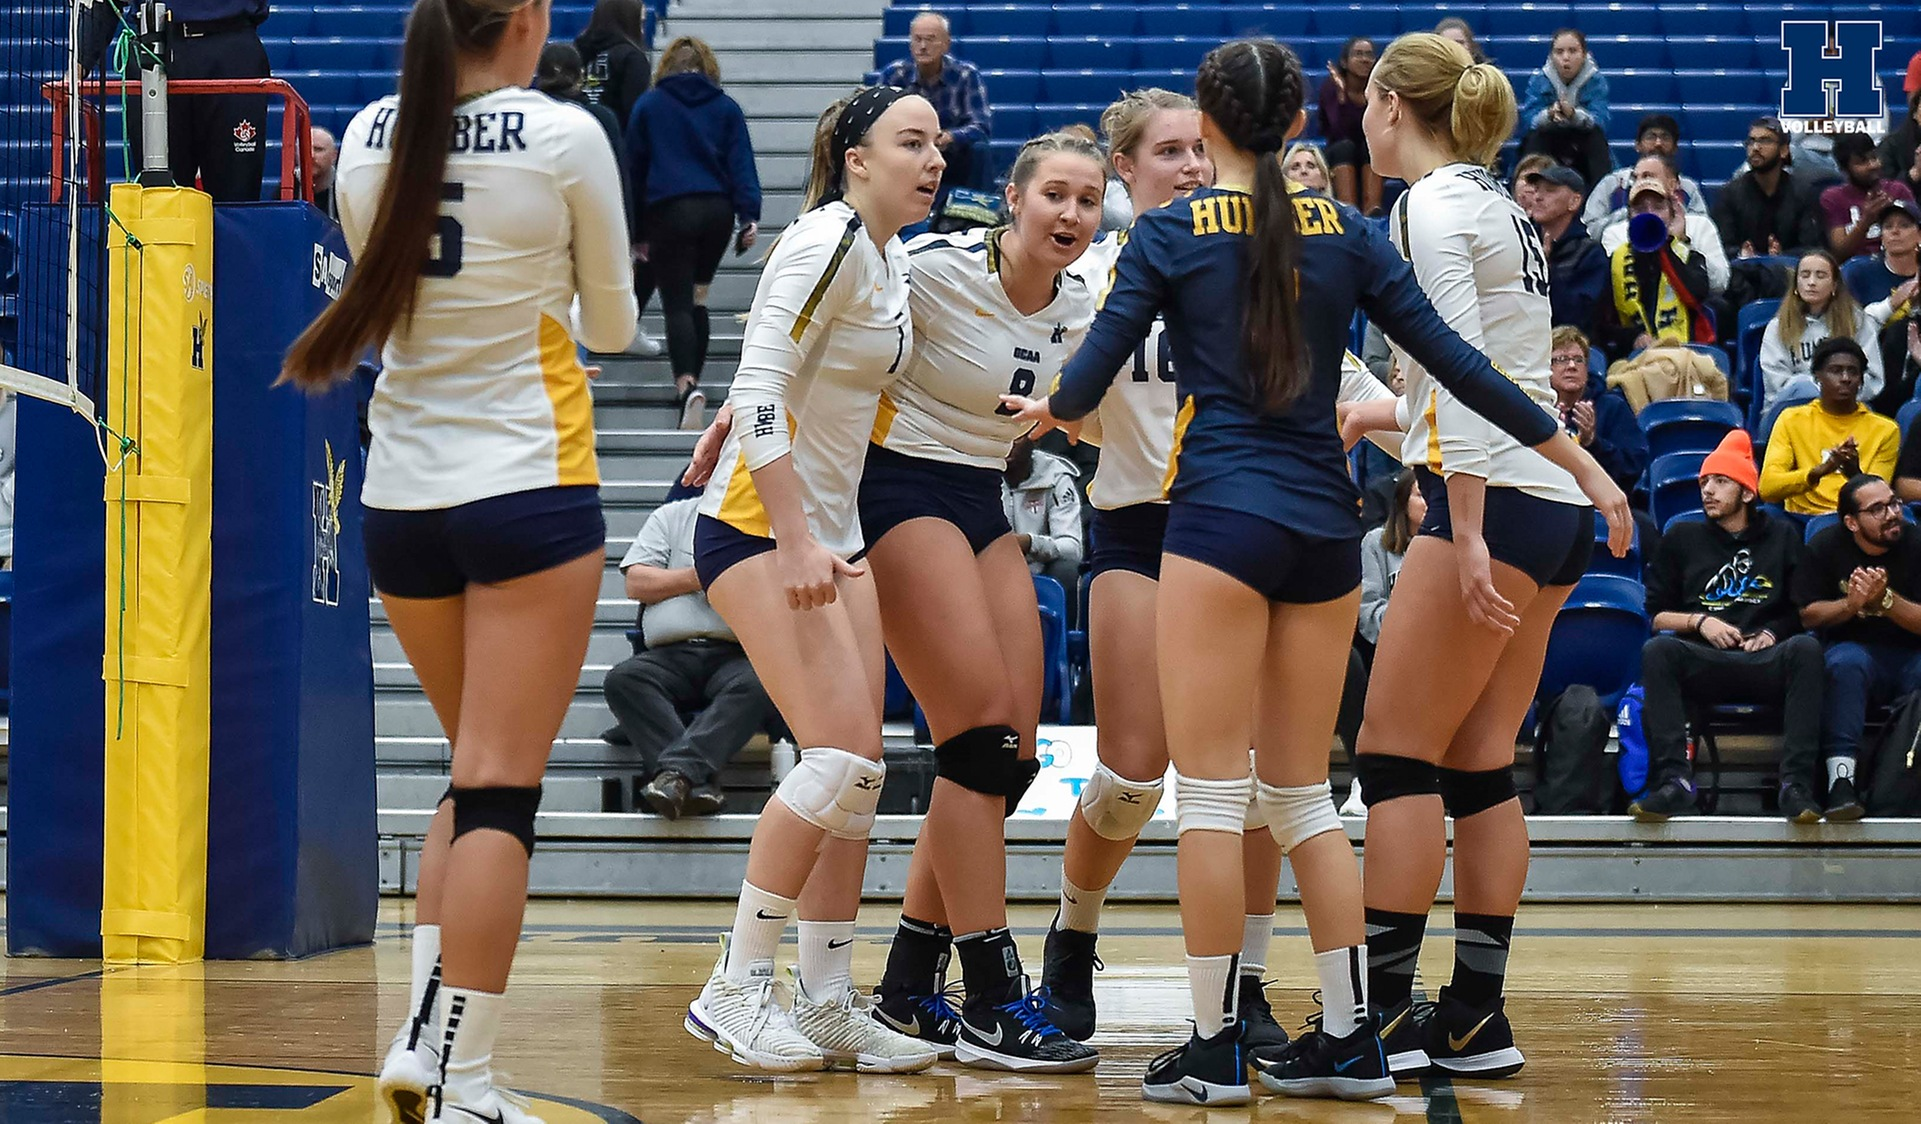 Women's Volleyball Sweeps Niagara in Home Opener, 3-0